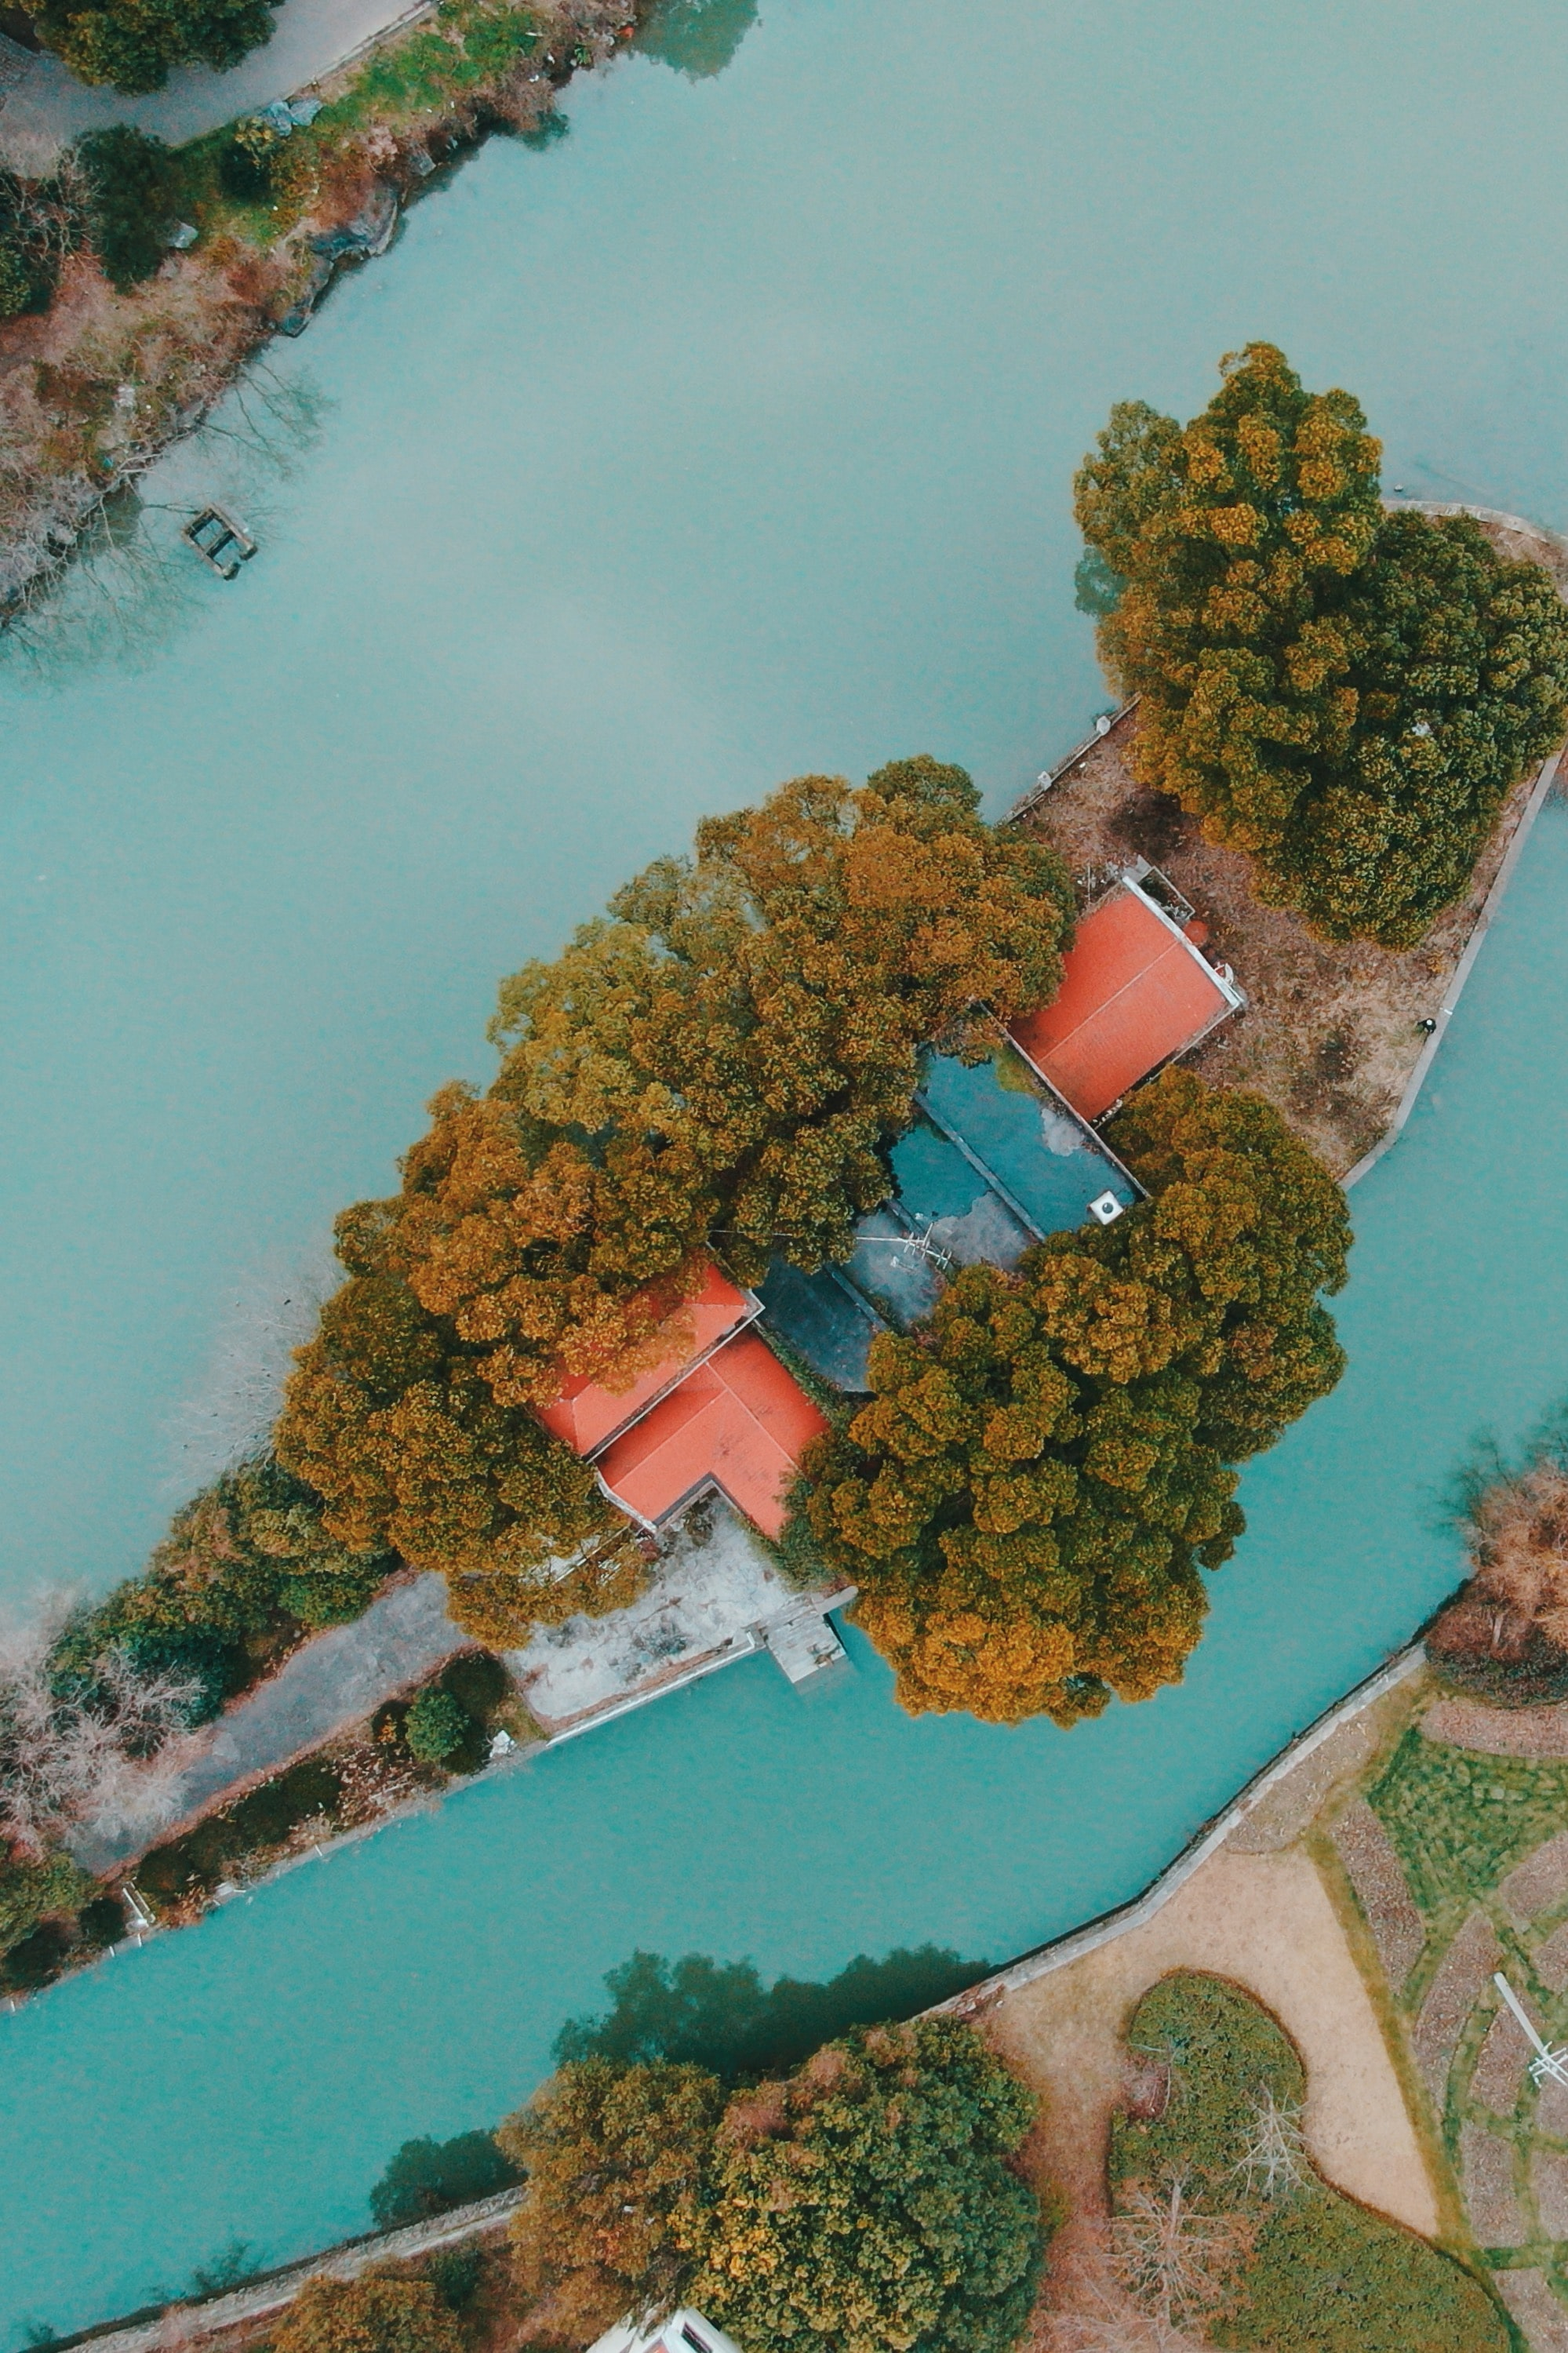 aerial photo of house with red roof in an islet